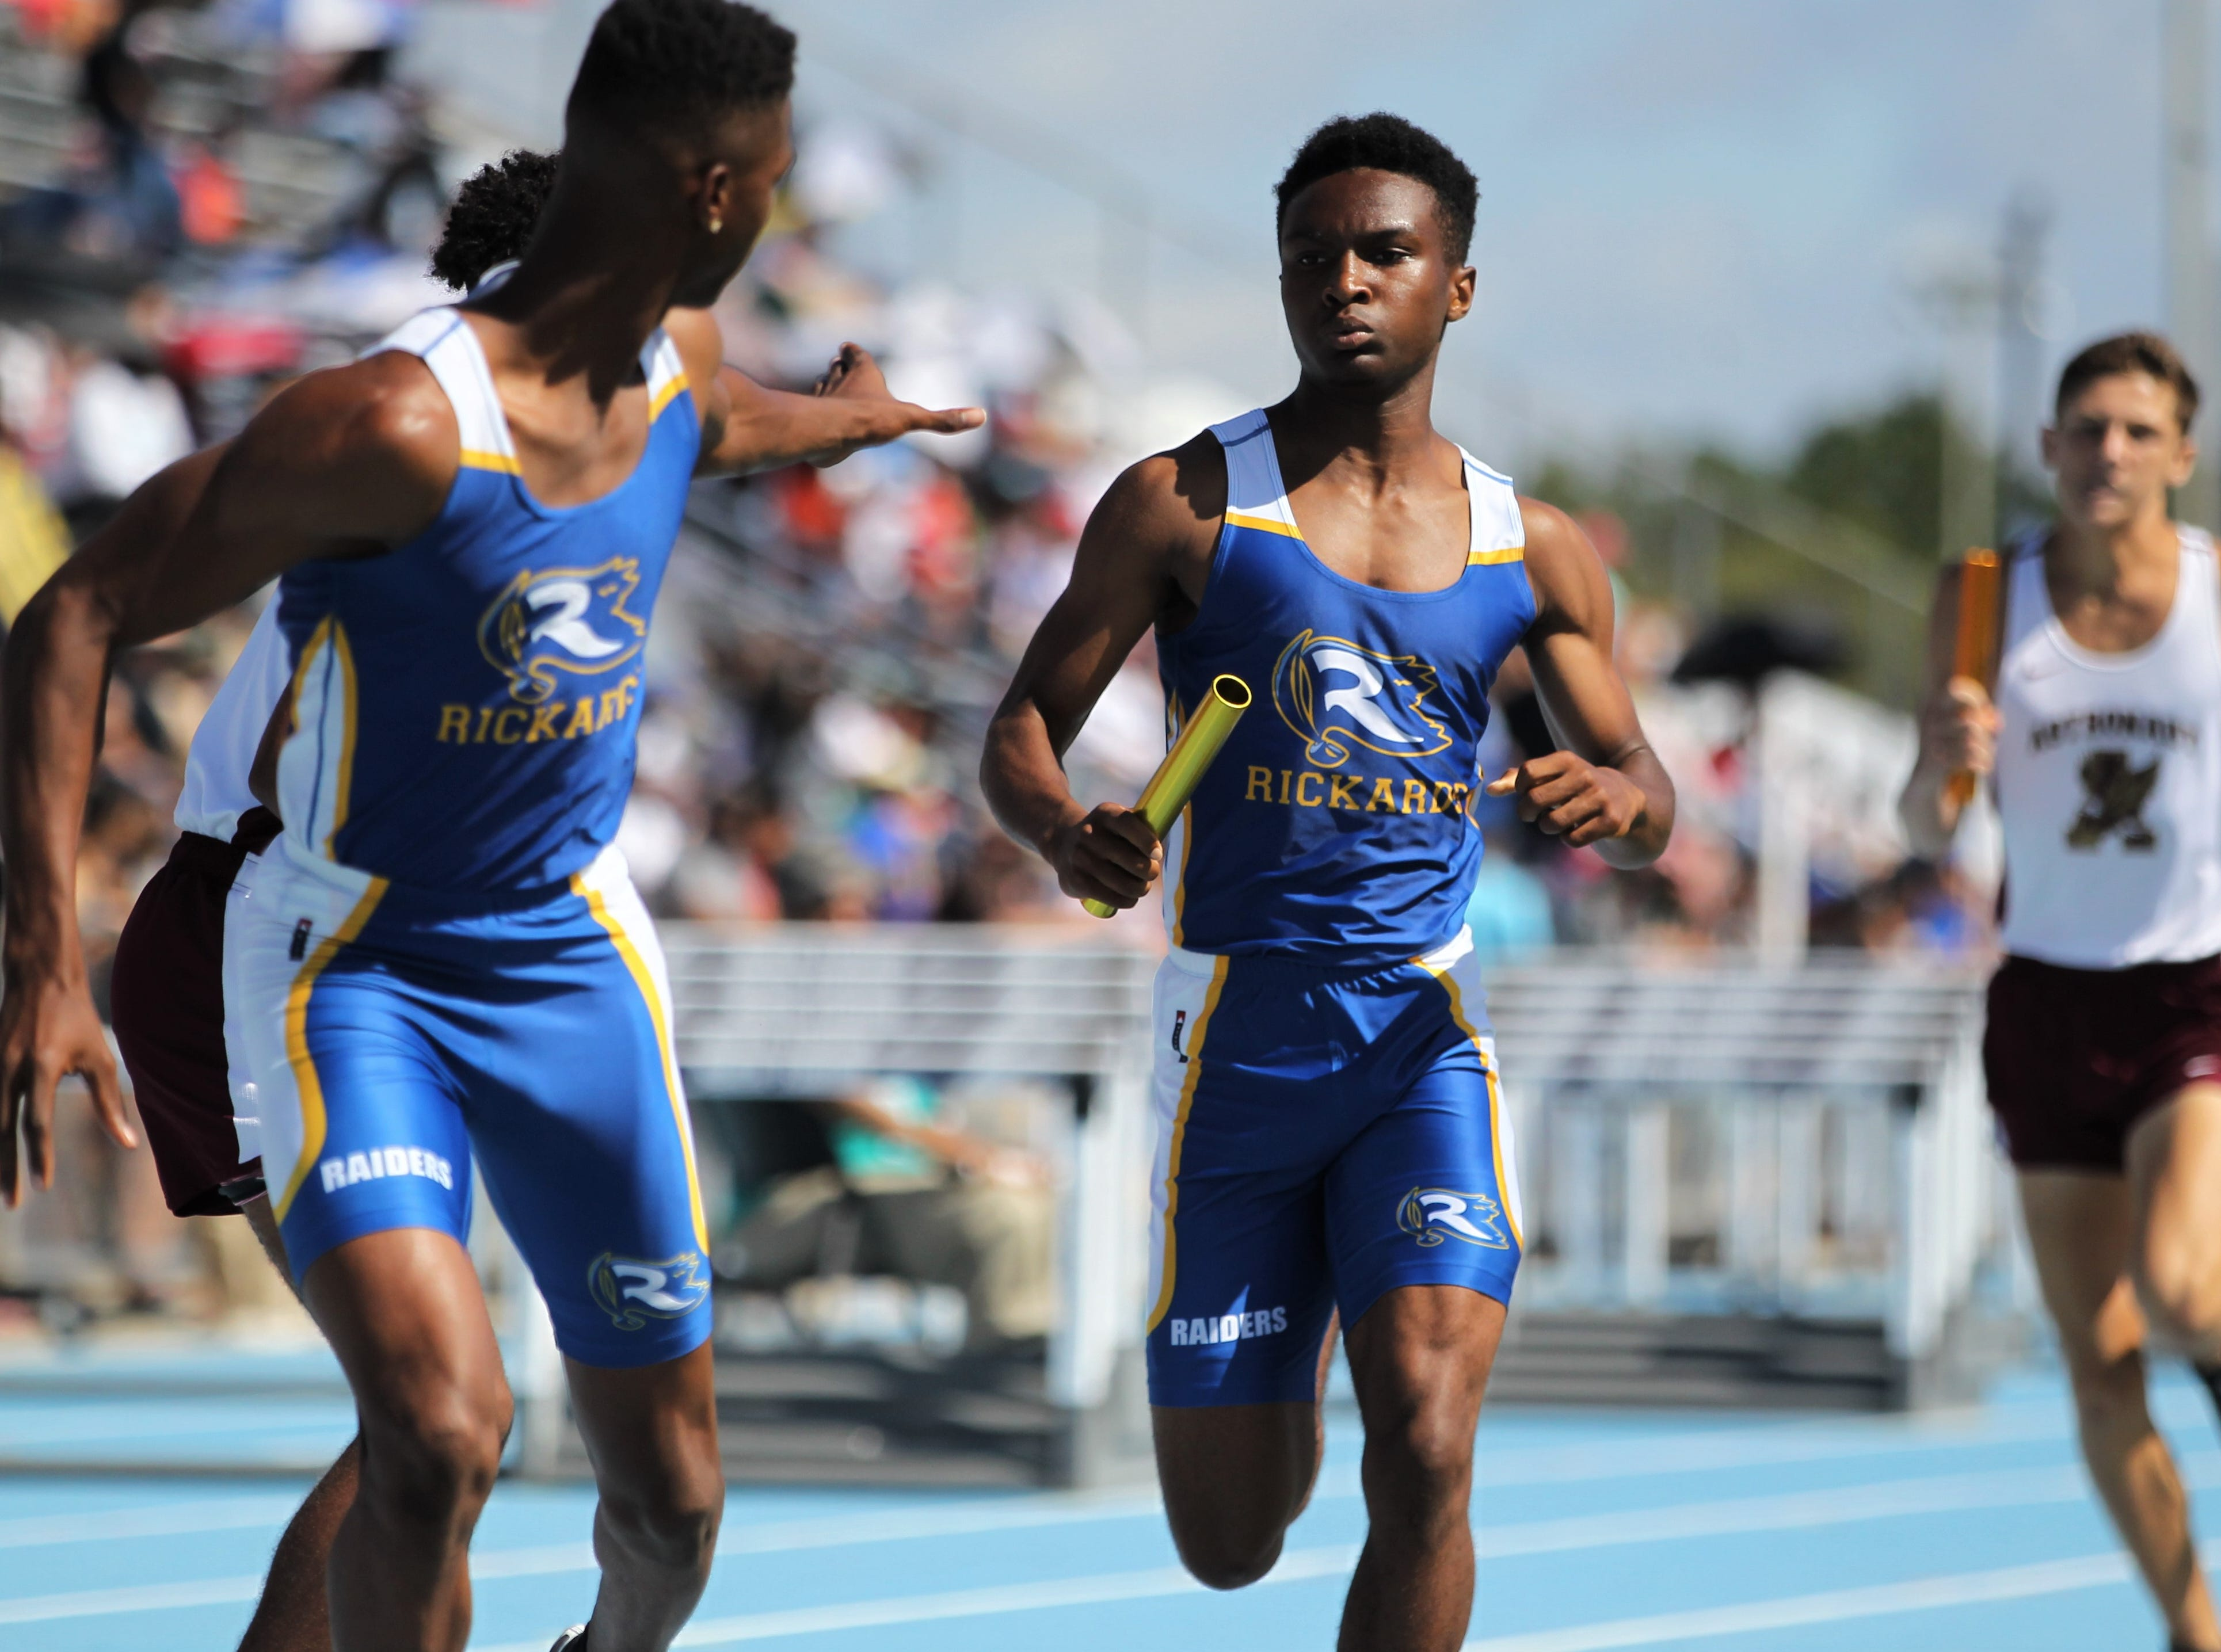 Rickards sophomore Jordan Guice runs a 4x800 leg during the FHSAA Track and Field State Championships at UNF's Hodges Stadium in Jacksonville on May 4, 2019.